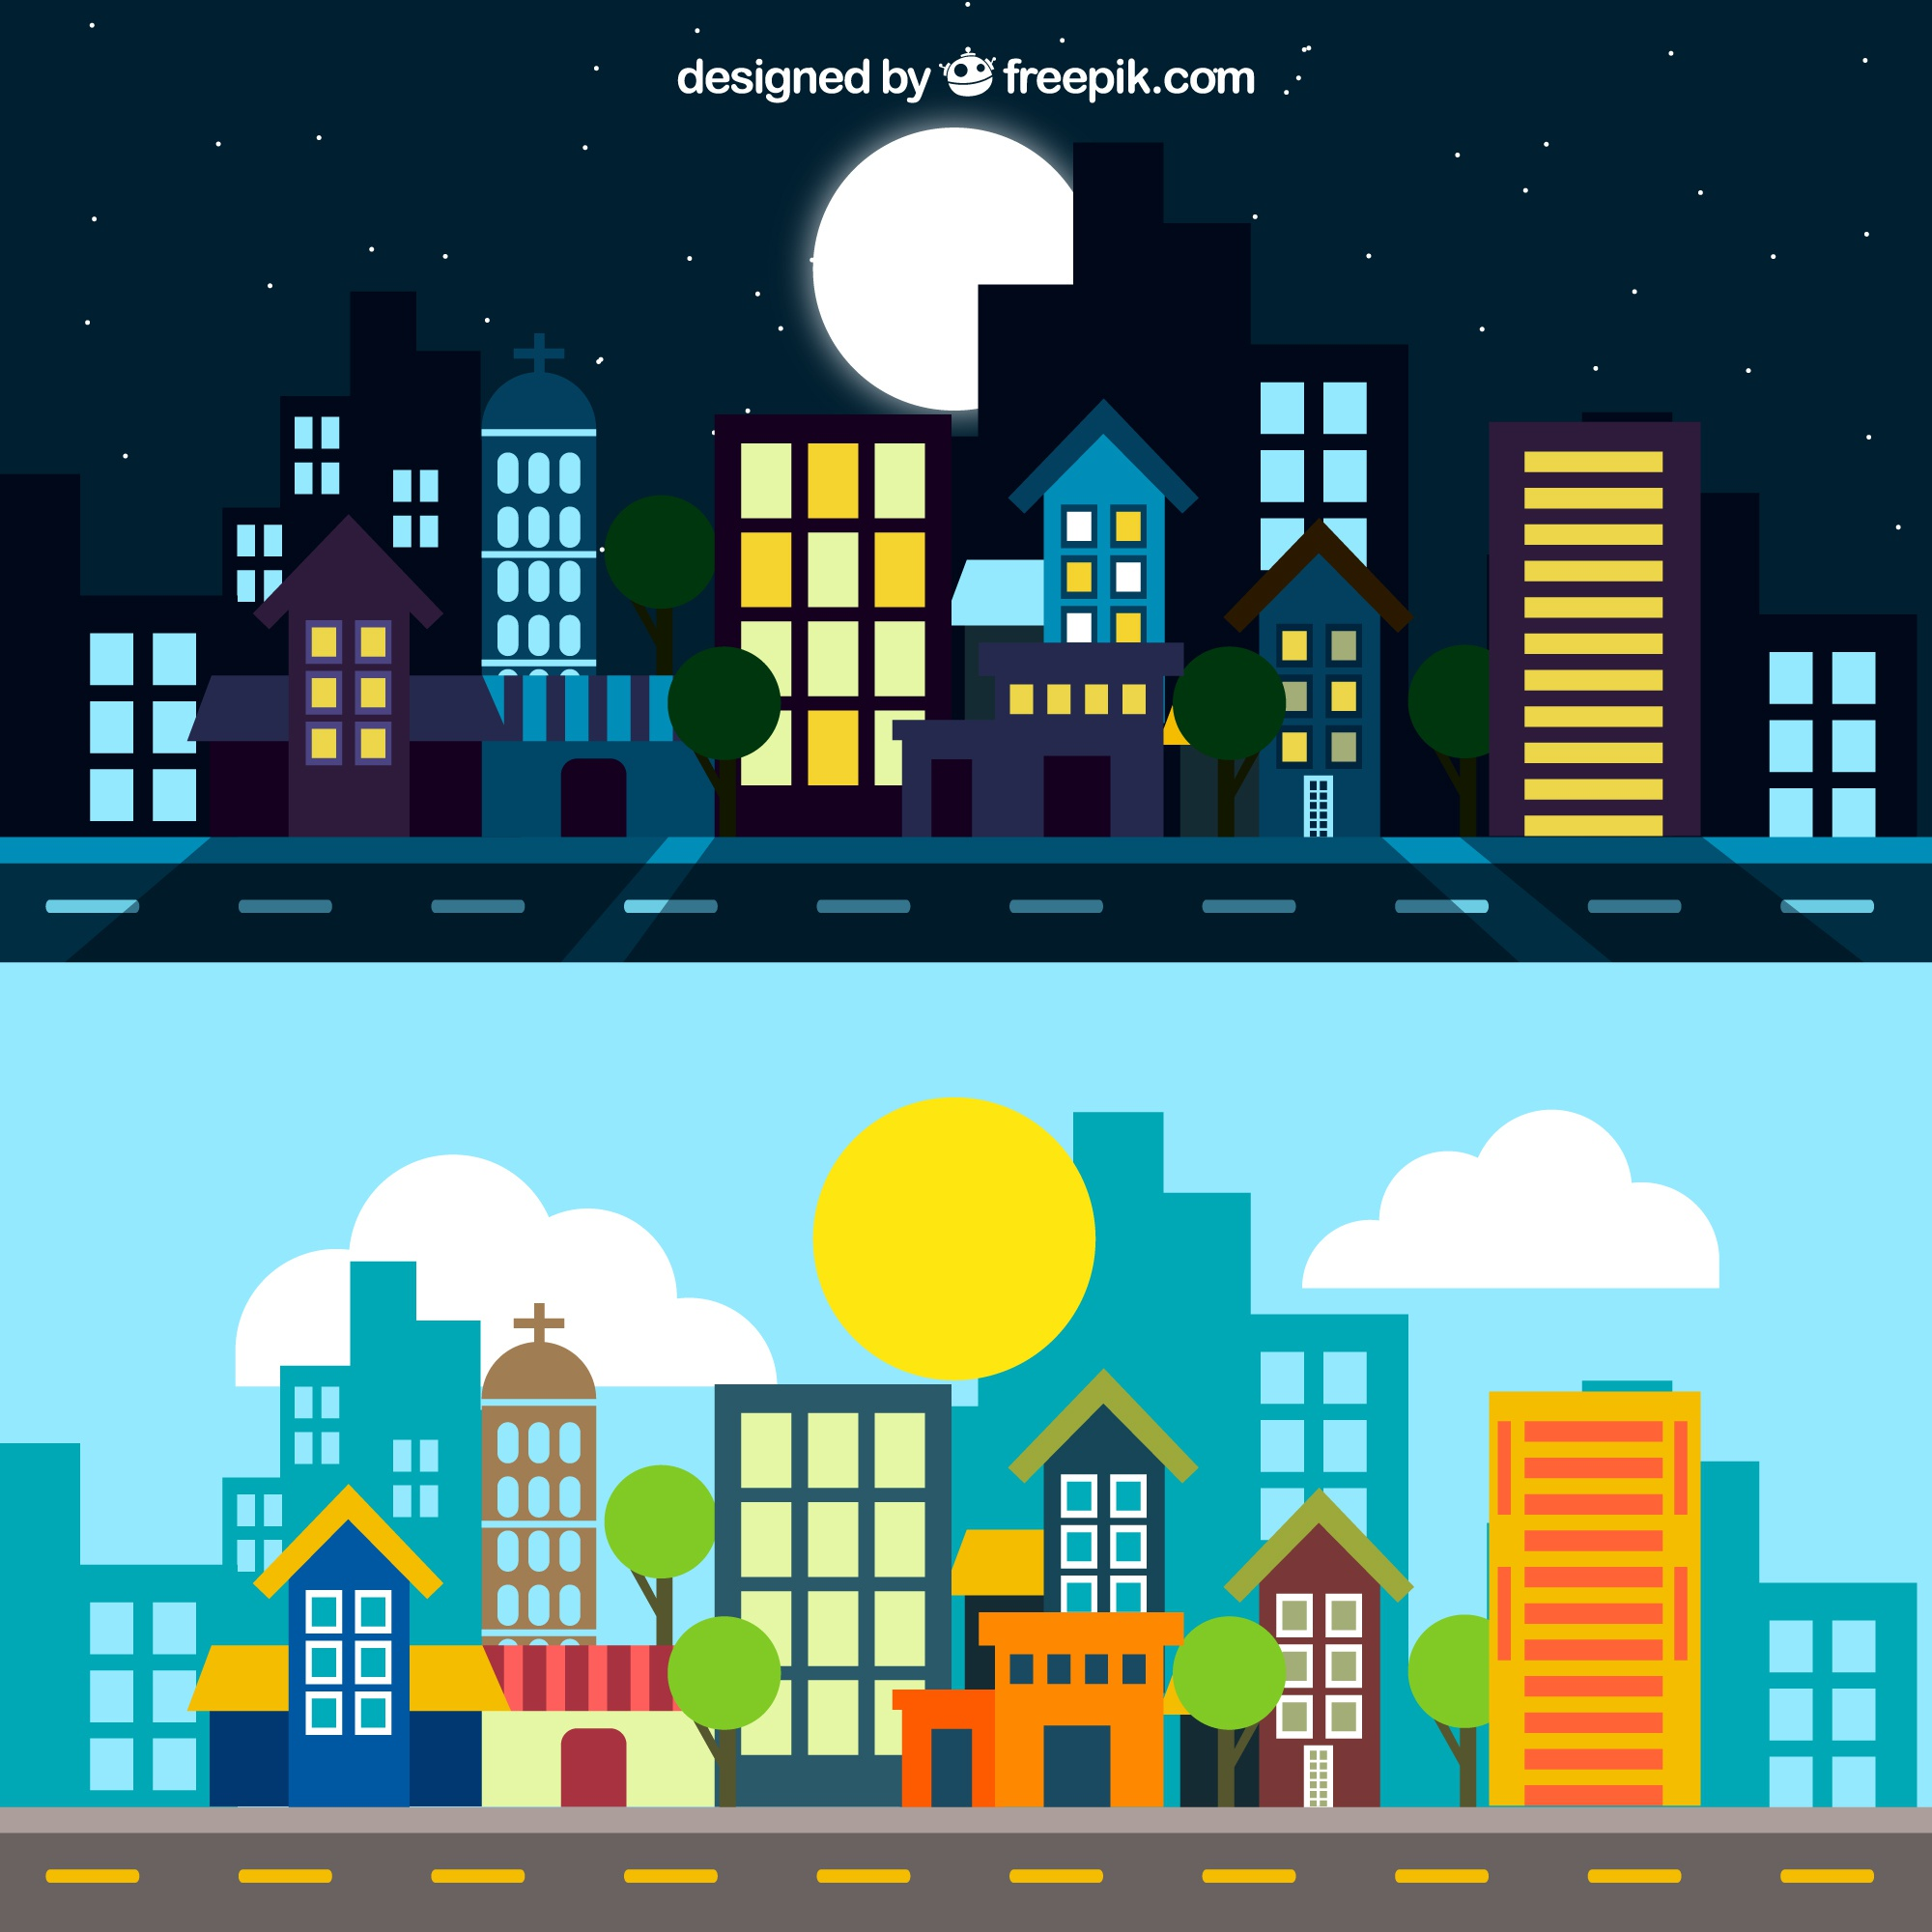 City at night and day illustration